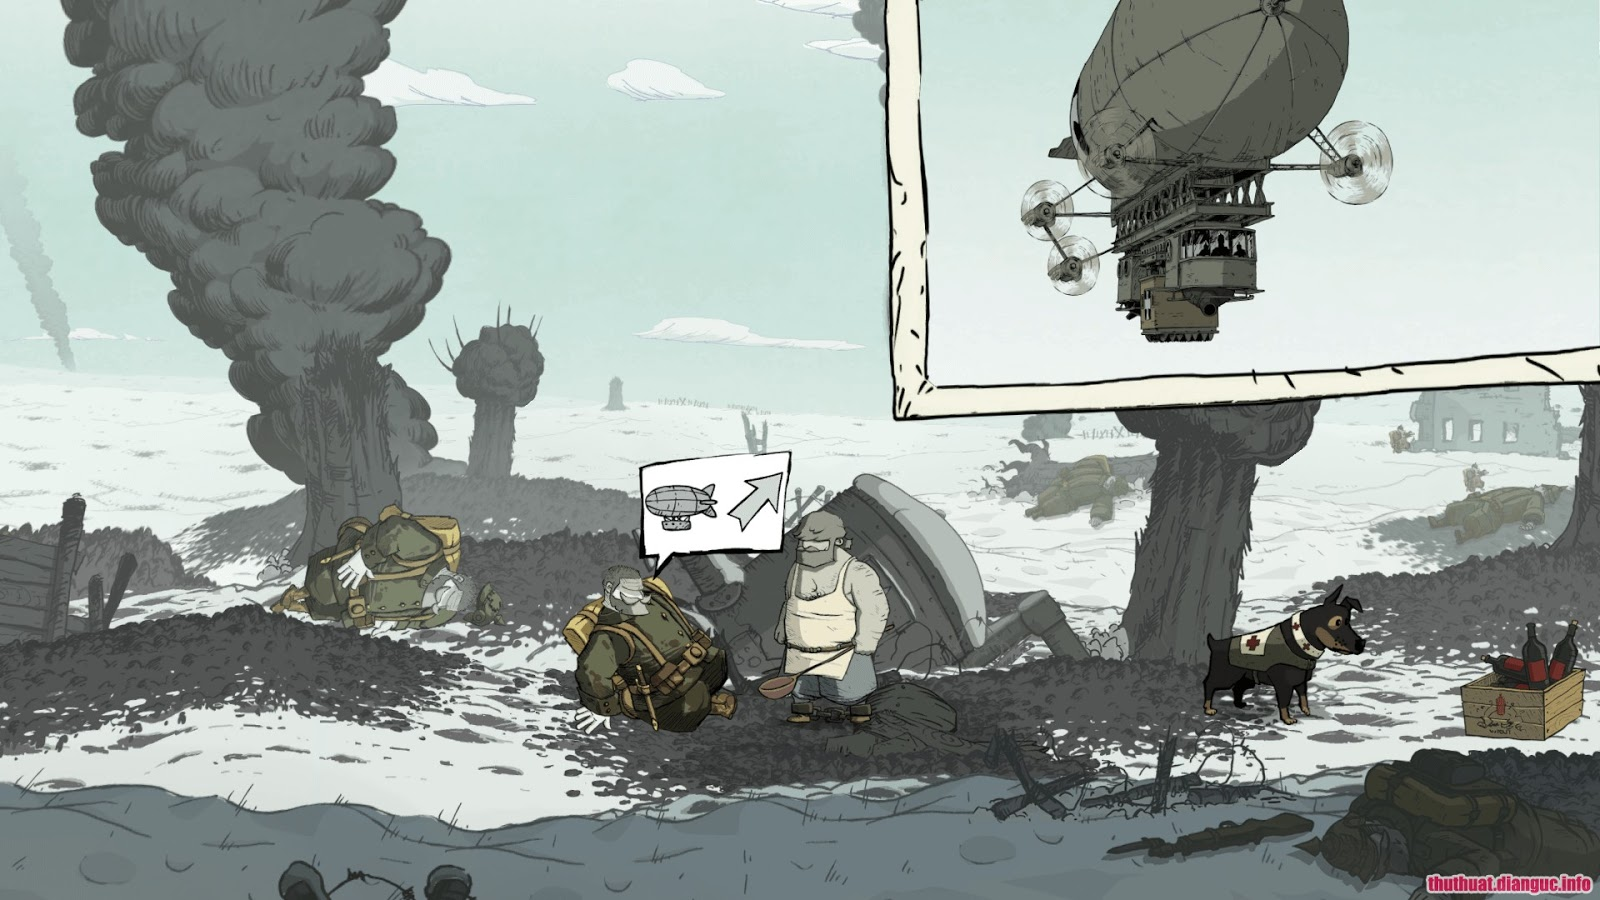 Download Game Valiant Hearts: The Great War Full Crack Việt Hóa, Game Valiant Hearts: The Great War Full Crack, Game Valiant Hearts: The Great War free download, Game Valiant Hearts: The Great War Việt Hóa